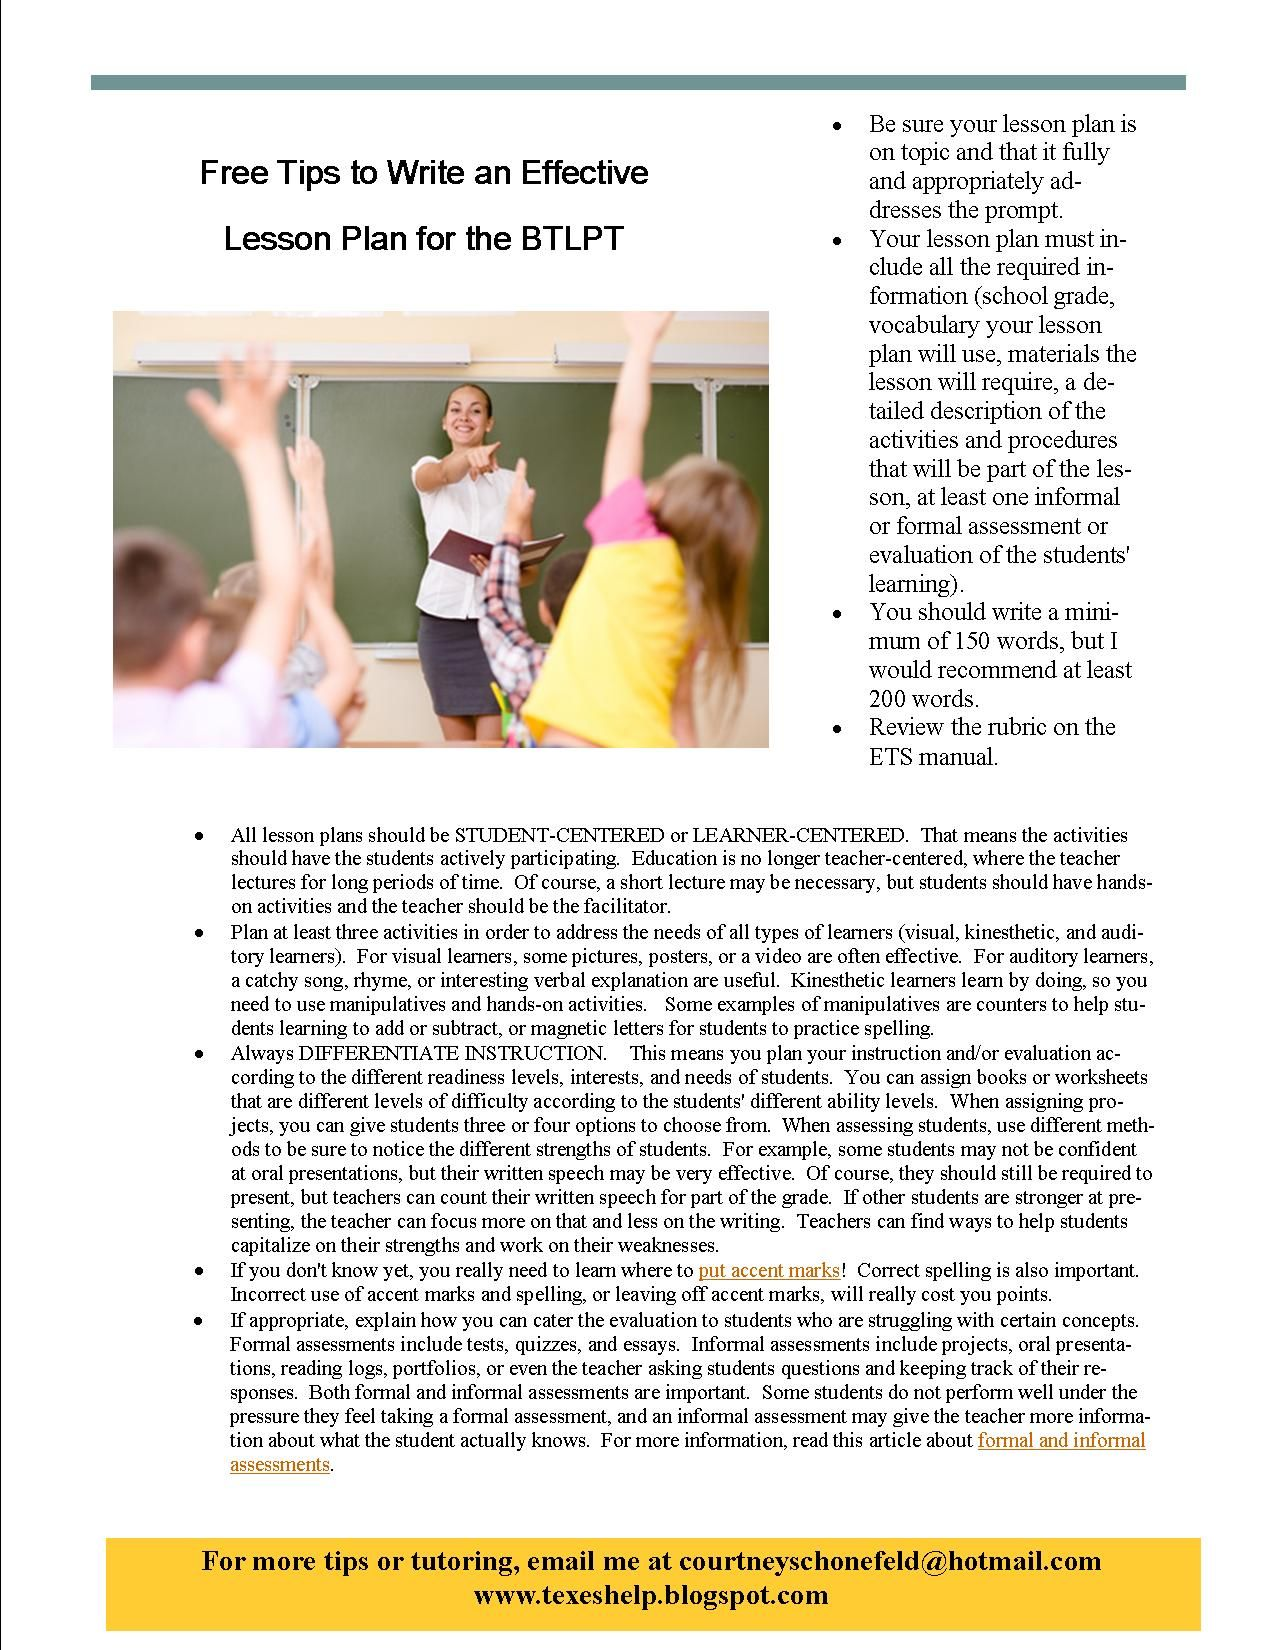 Free Tips To Write An Effective Lesson Plan For The Btlpt Spanish